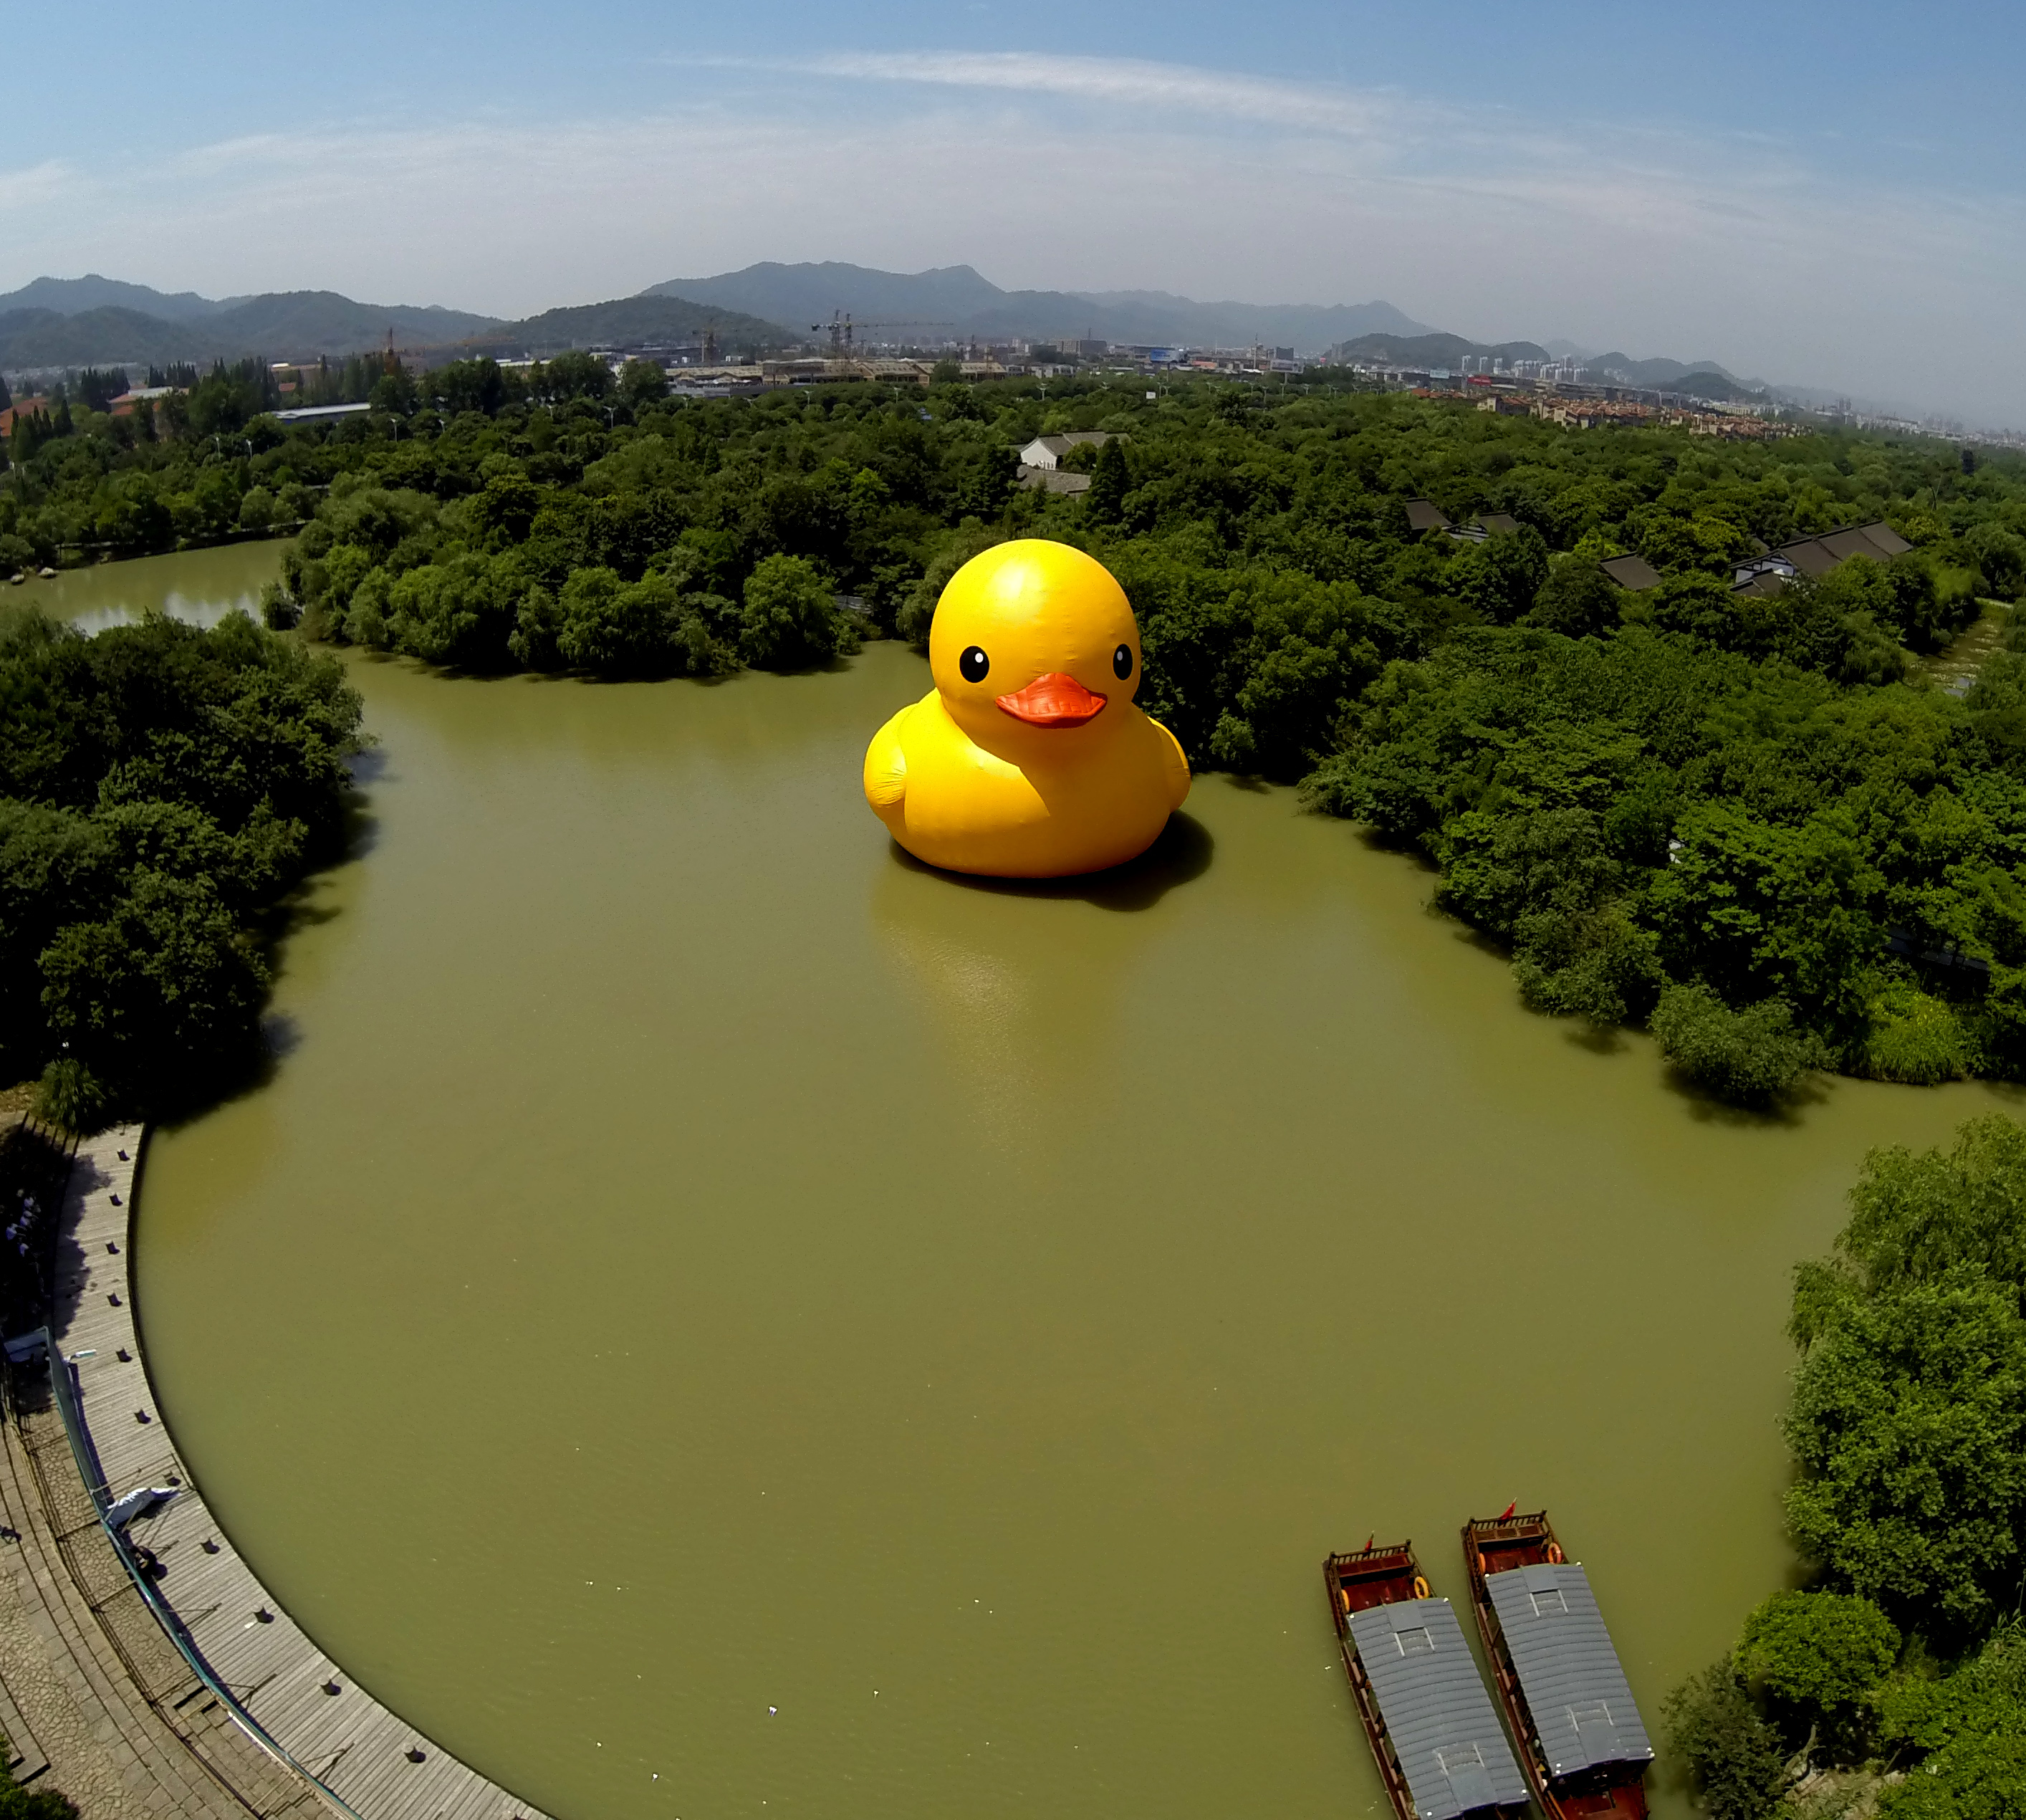 Giant Inflatable Duck Artists Next Big Thing Hippos Cnn Travel Natural Rubber